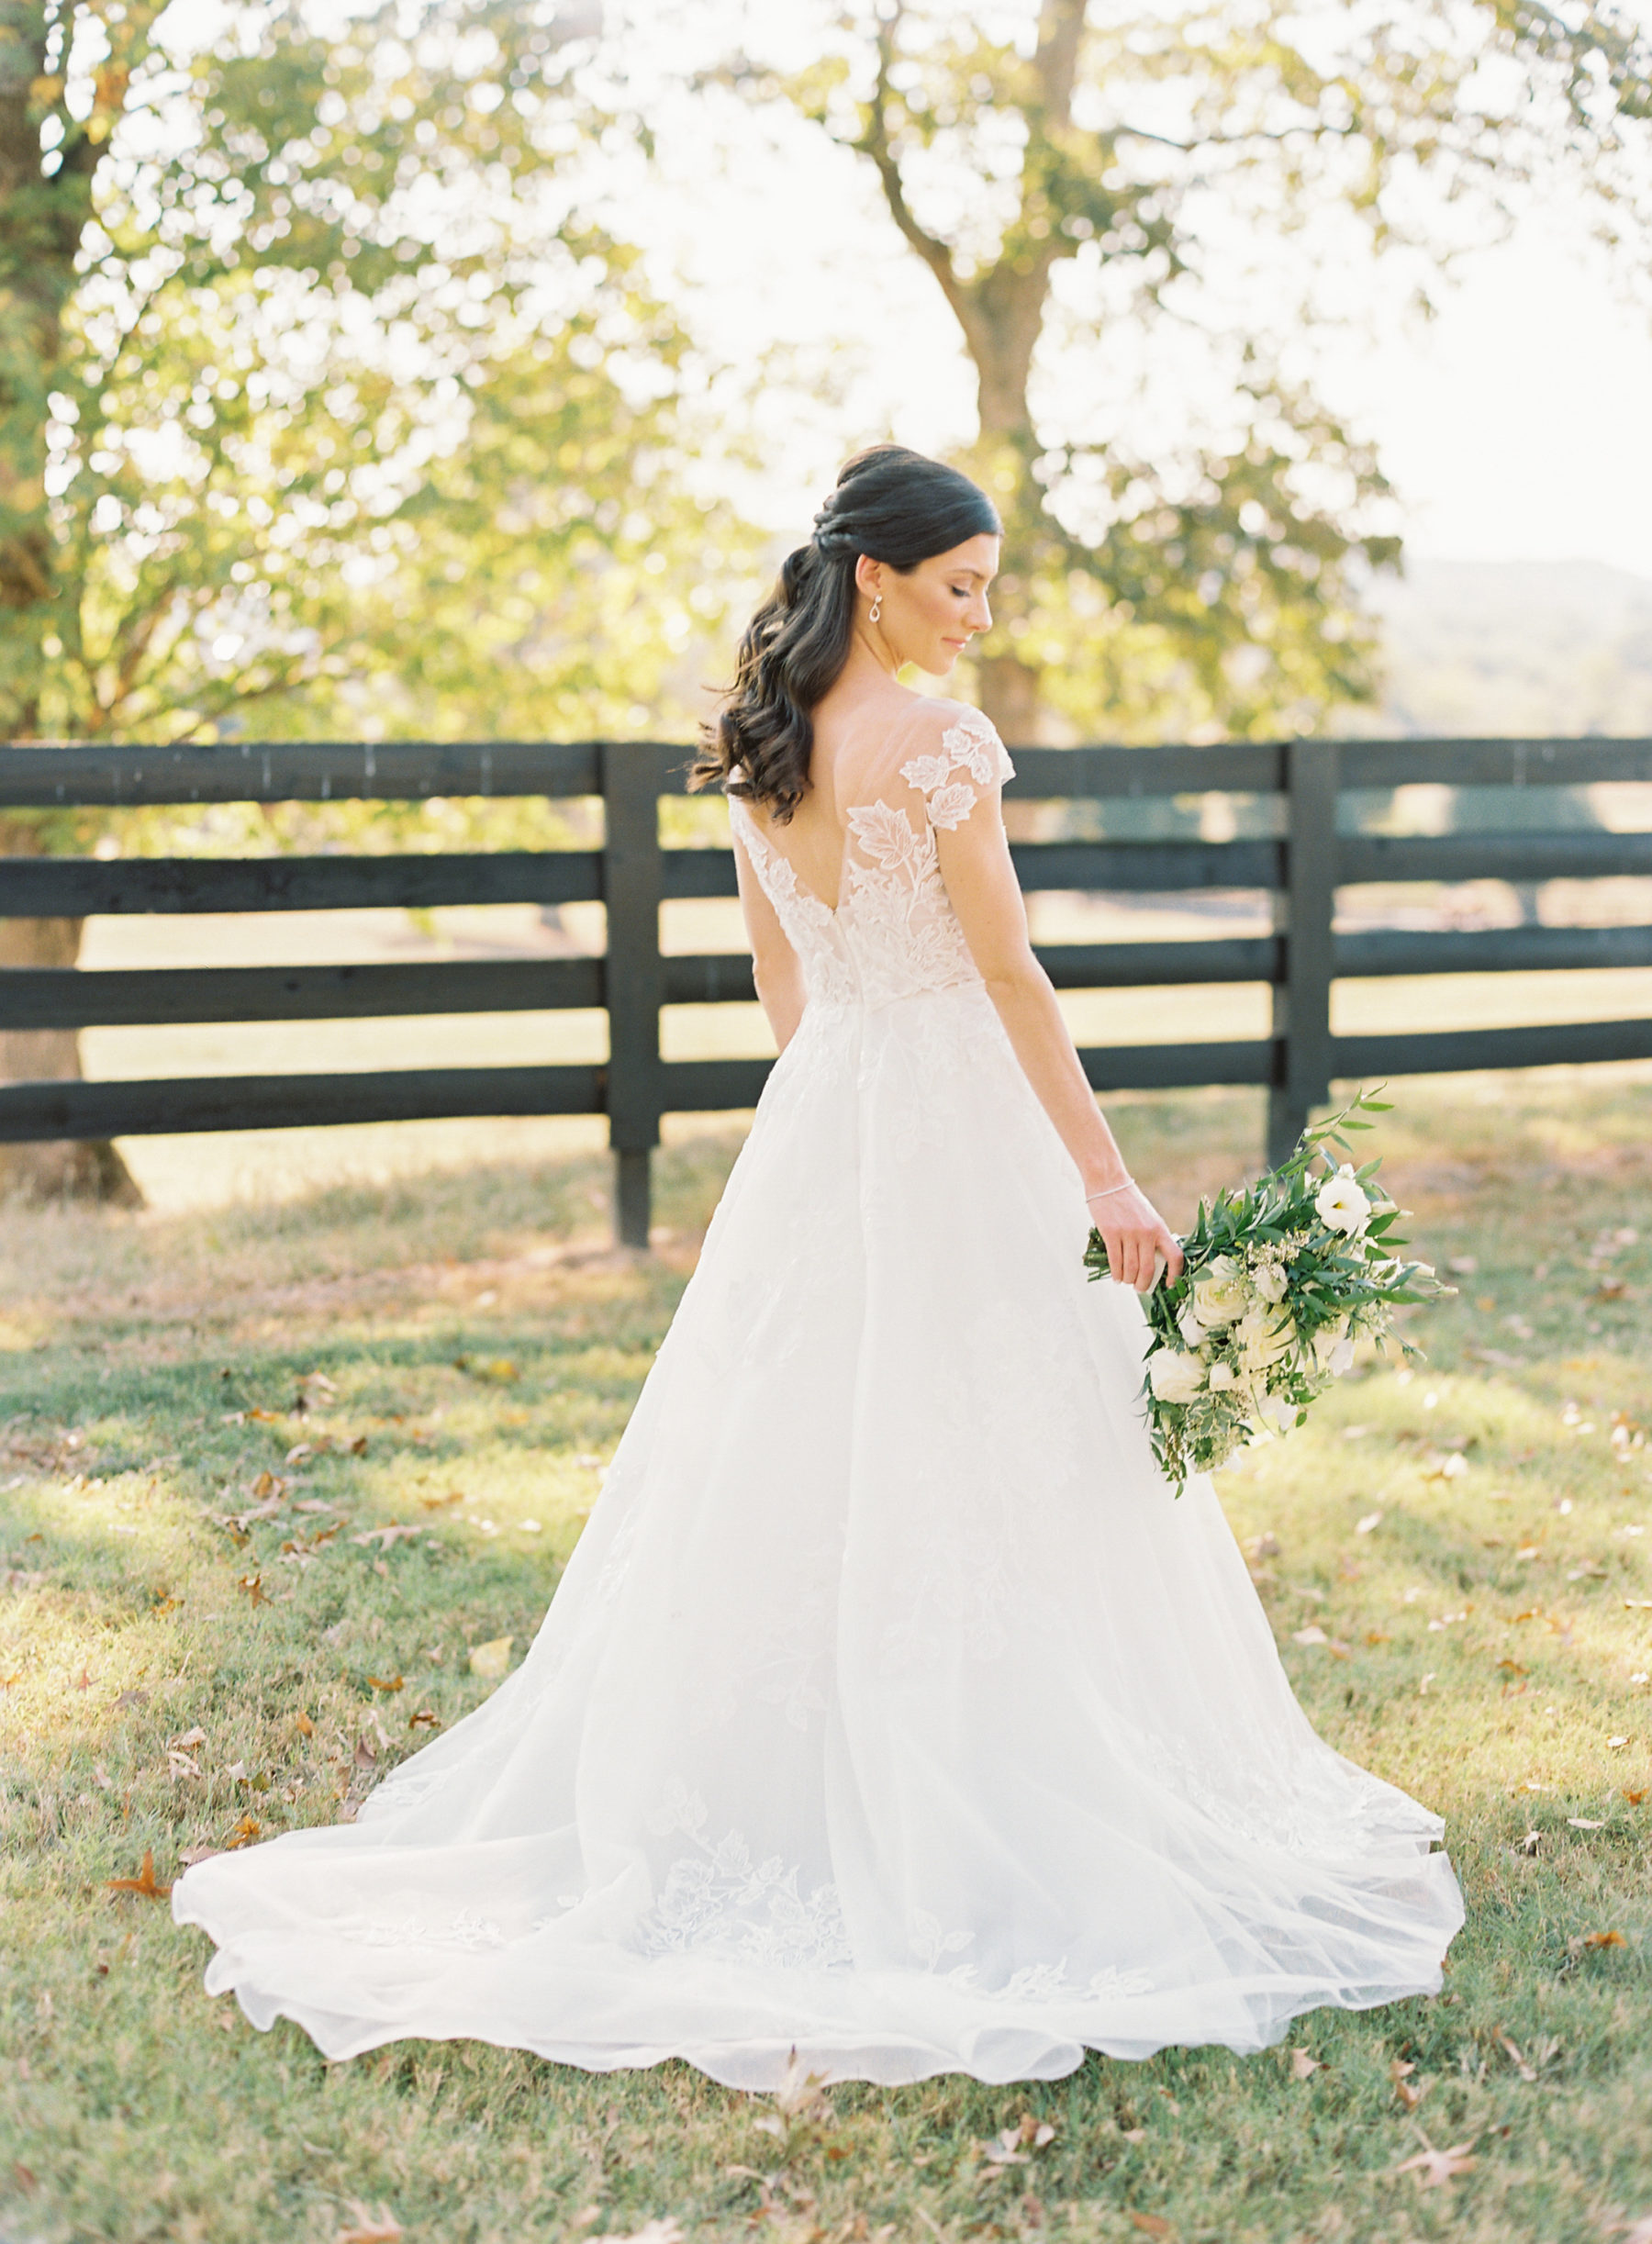 Lace wedding dress: Fall Nashville wedding at Autumn Crest Farm featured on Nashville Bride Guide